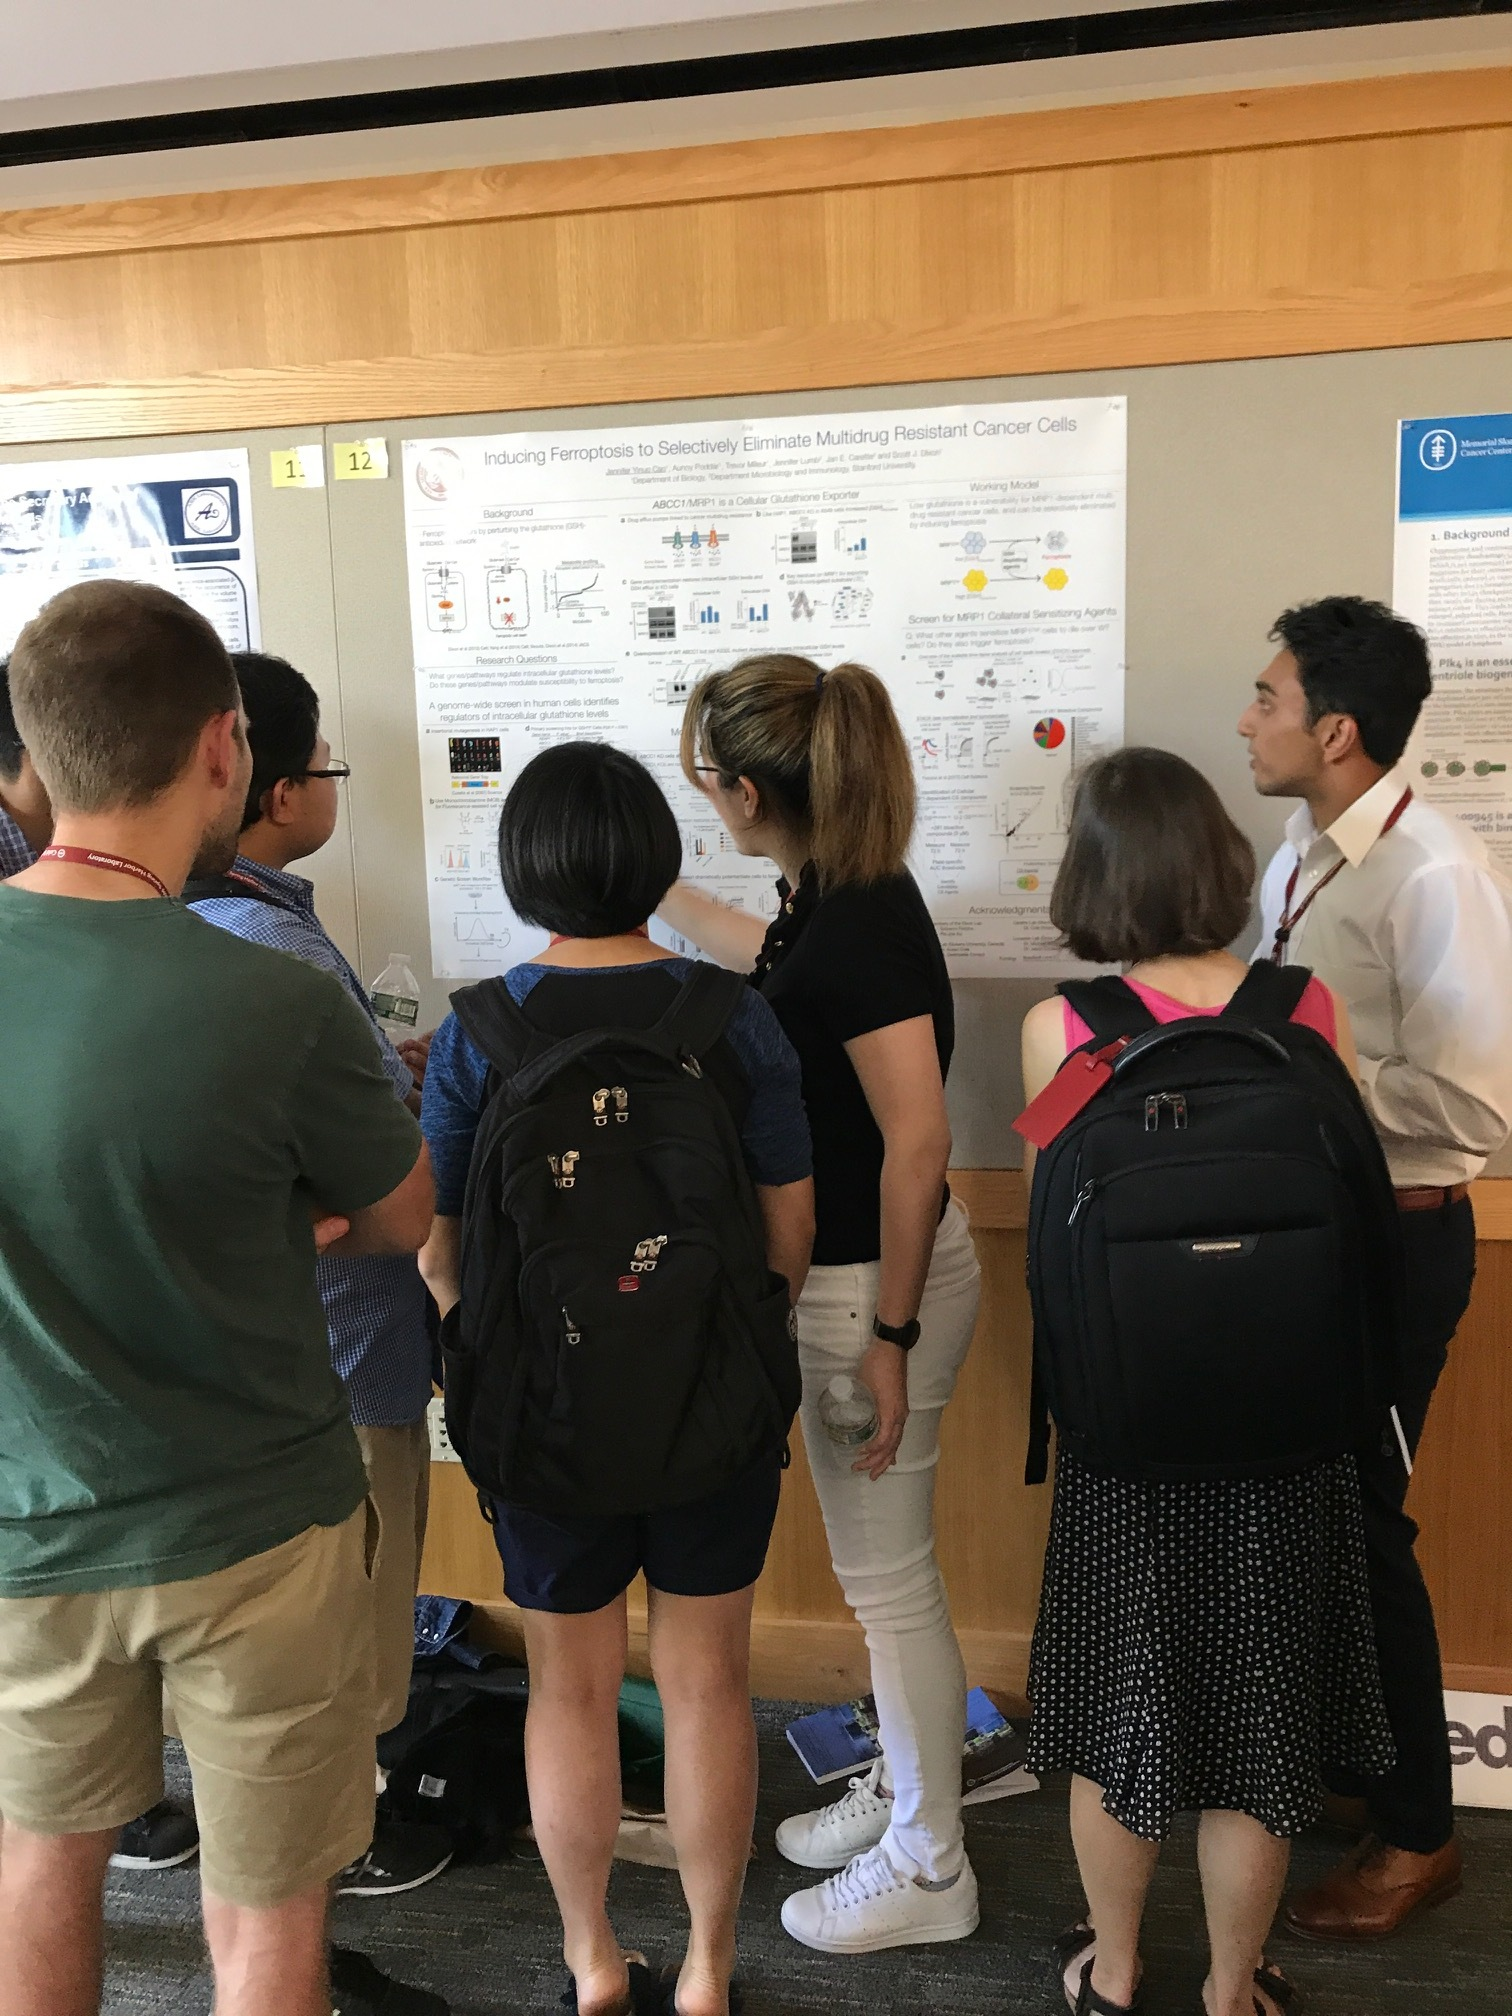 Jen explains her work. Aunoy looks on. - CSHL Cell Death Meeting, 16 Aug 2017